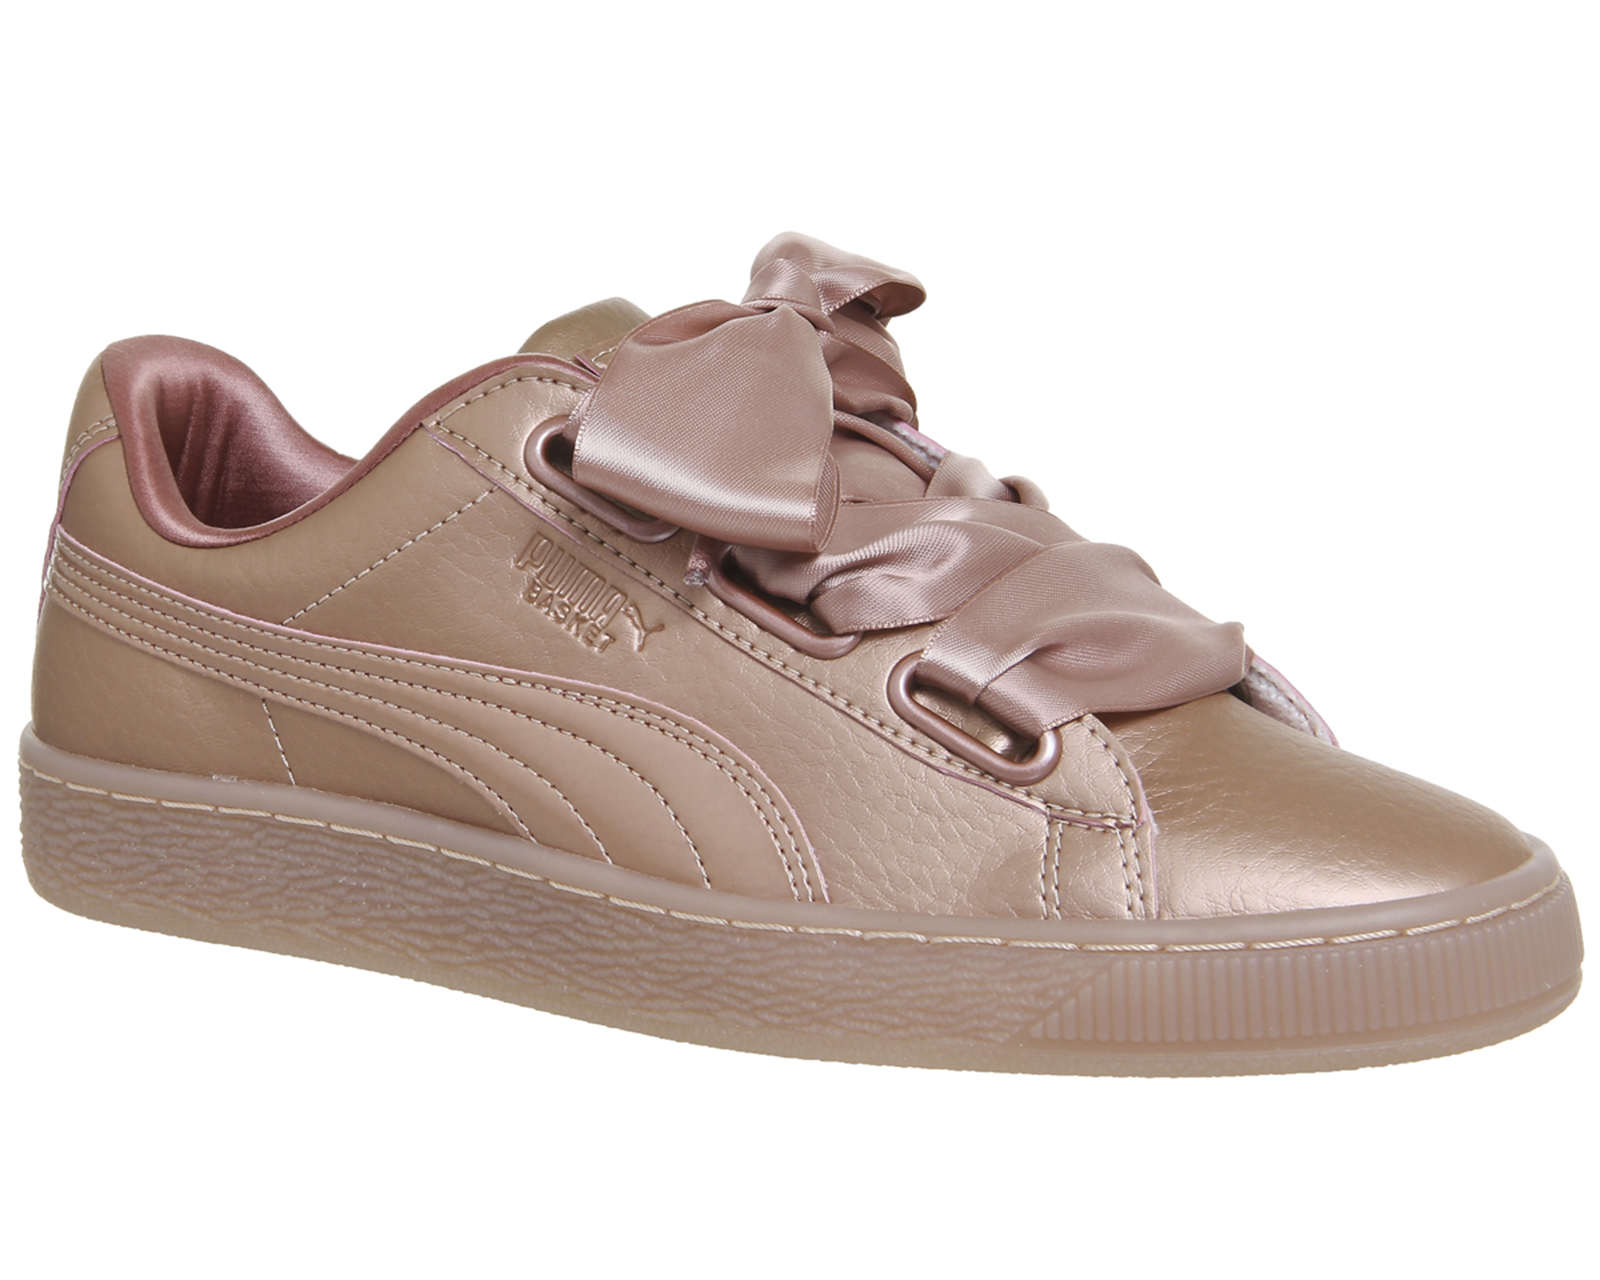 a4ccafc74e2866 Sentinel Womens Puma Basket Heart Trainers ROSE COPPER METALLIC Trainers  Shoes